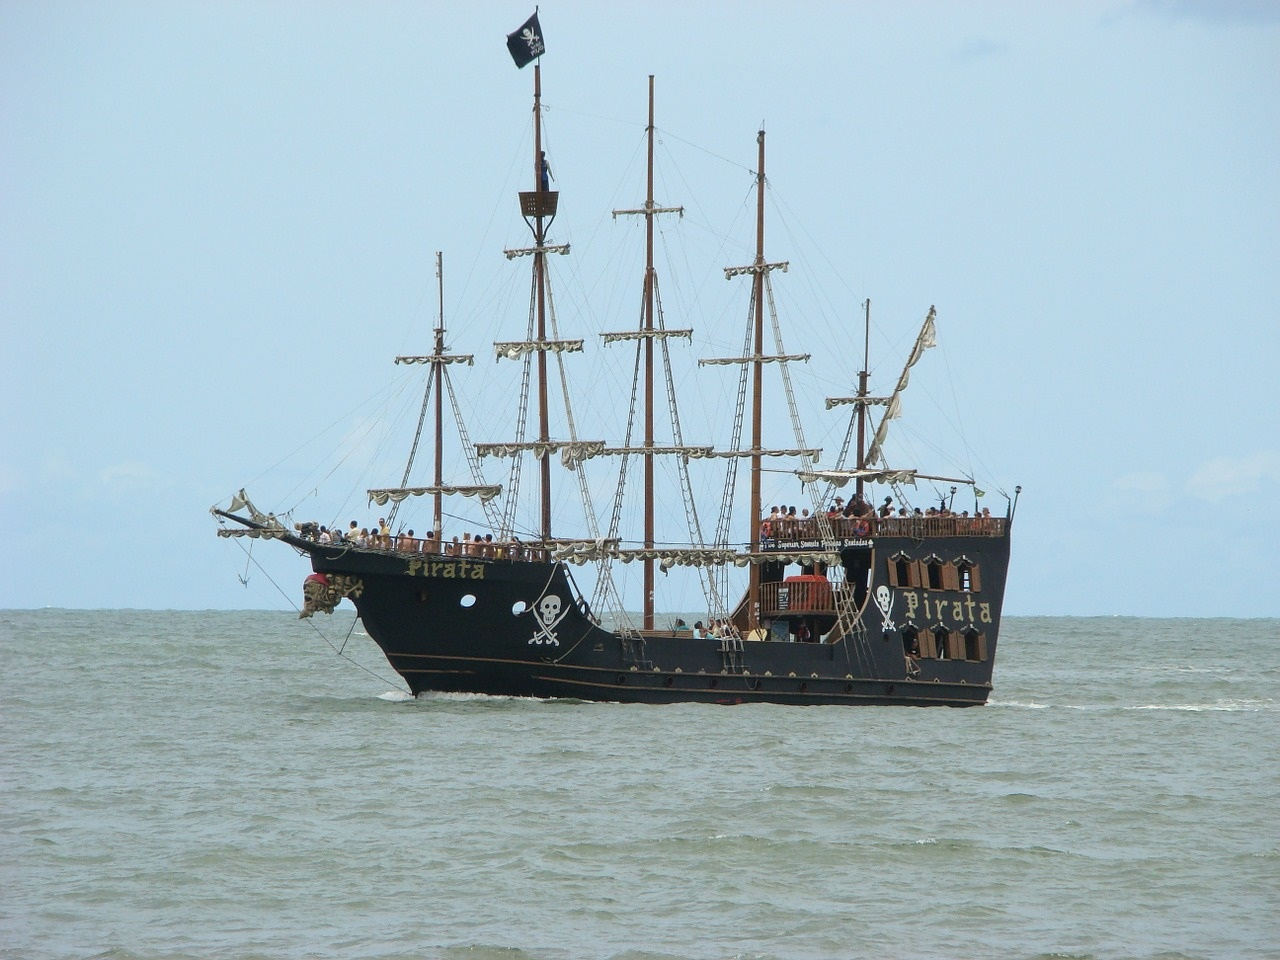 blackbeard pirate ship related - photo #10